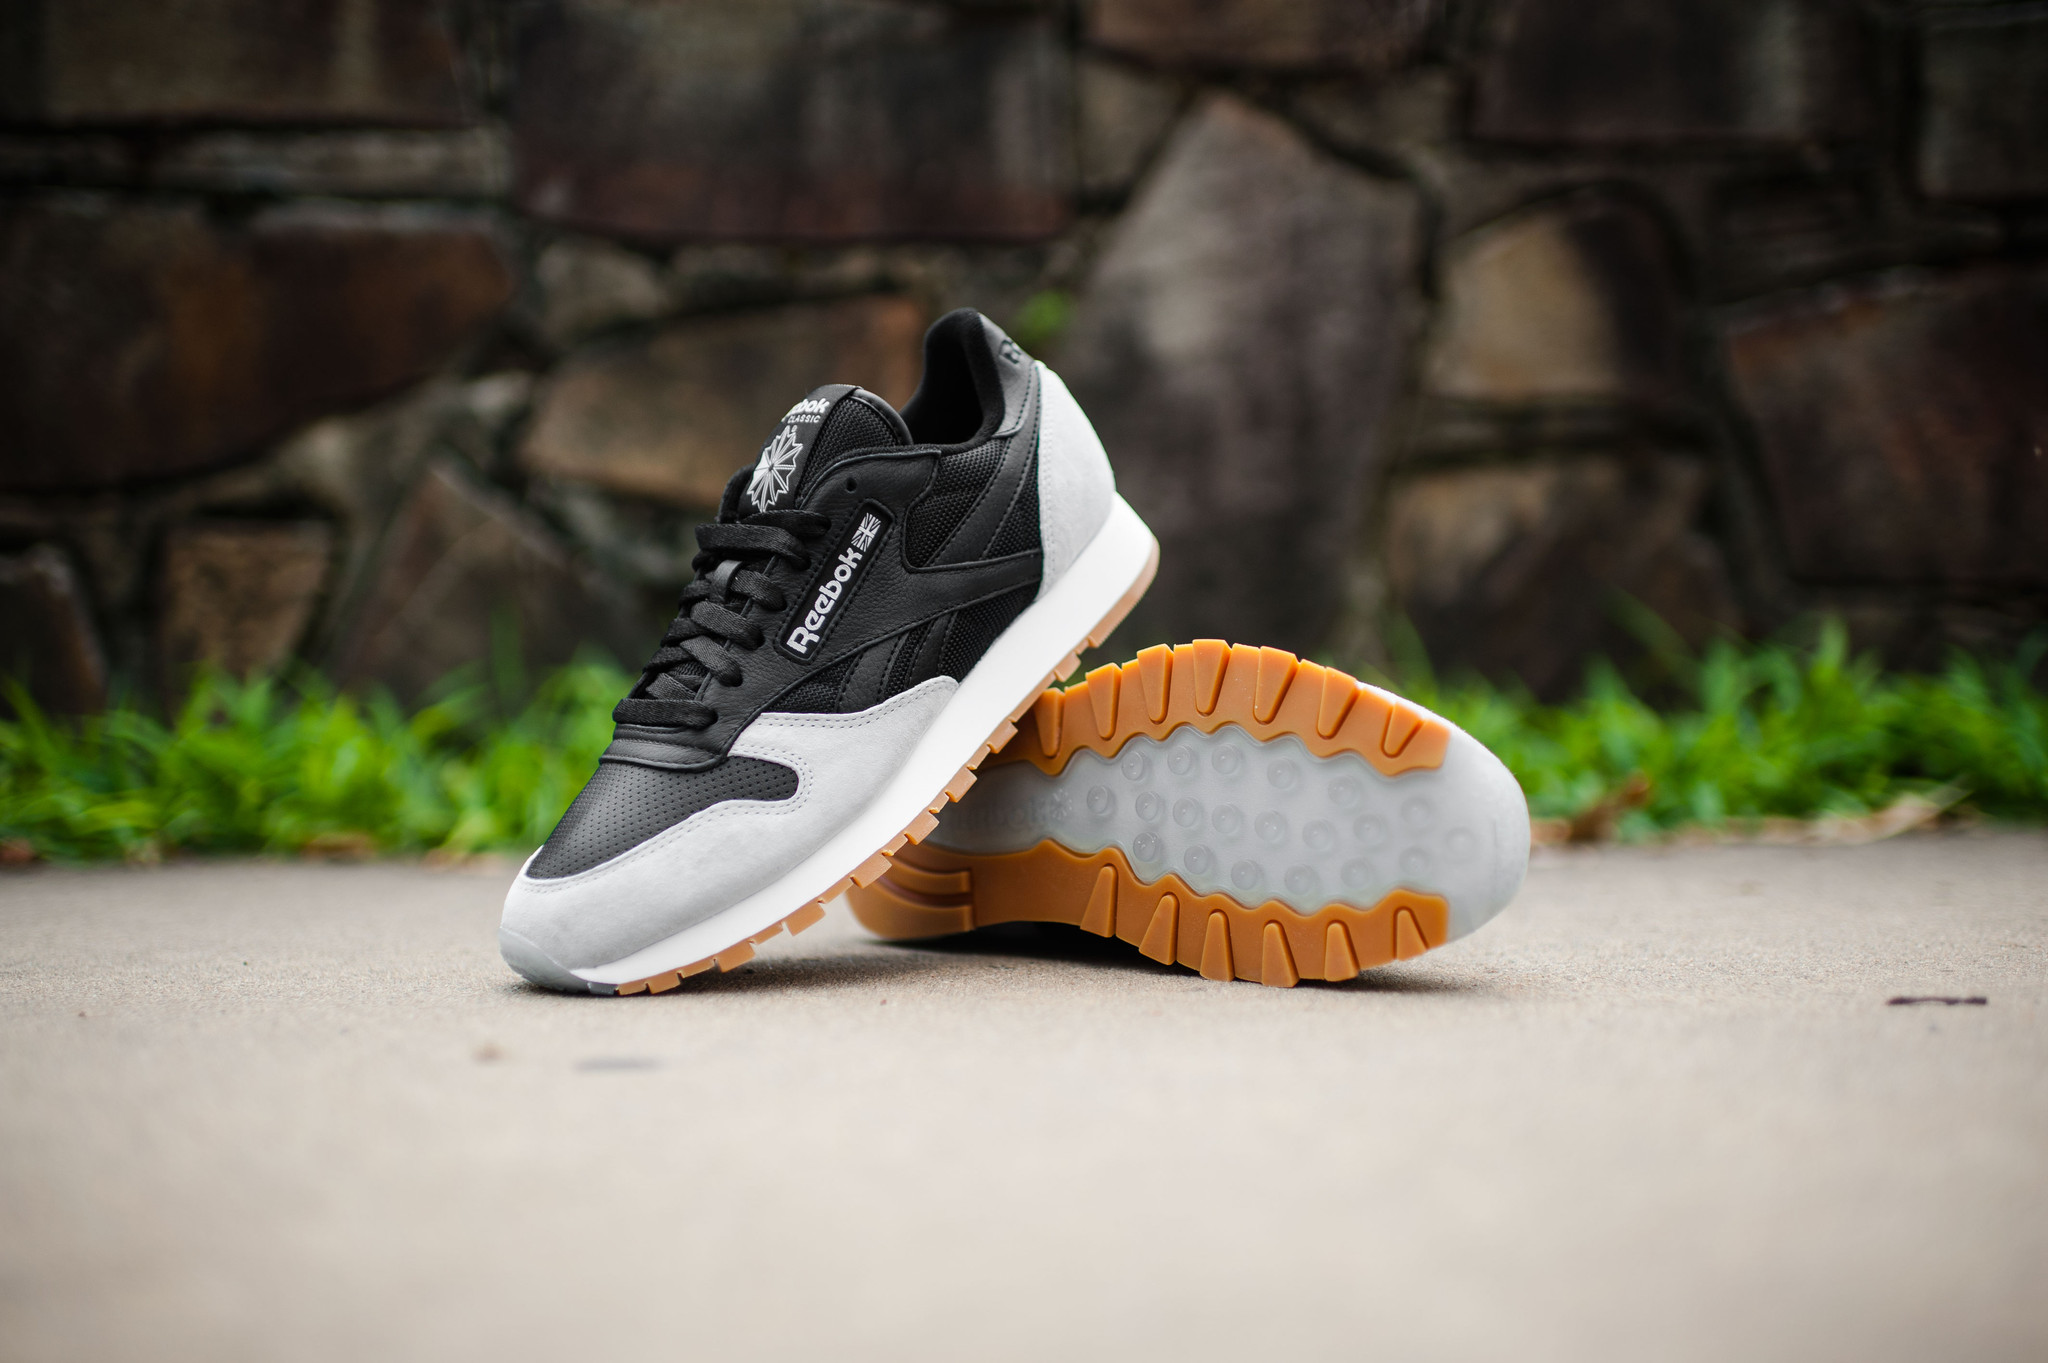 super popular a4fd4 8015d Under the Radar: July's Unhyped Sneakers You Still Need ...